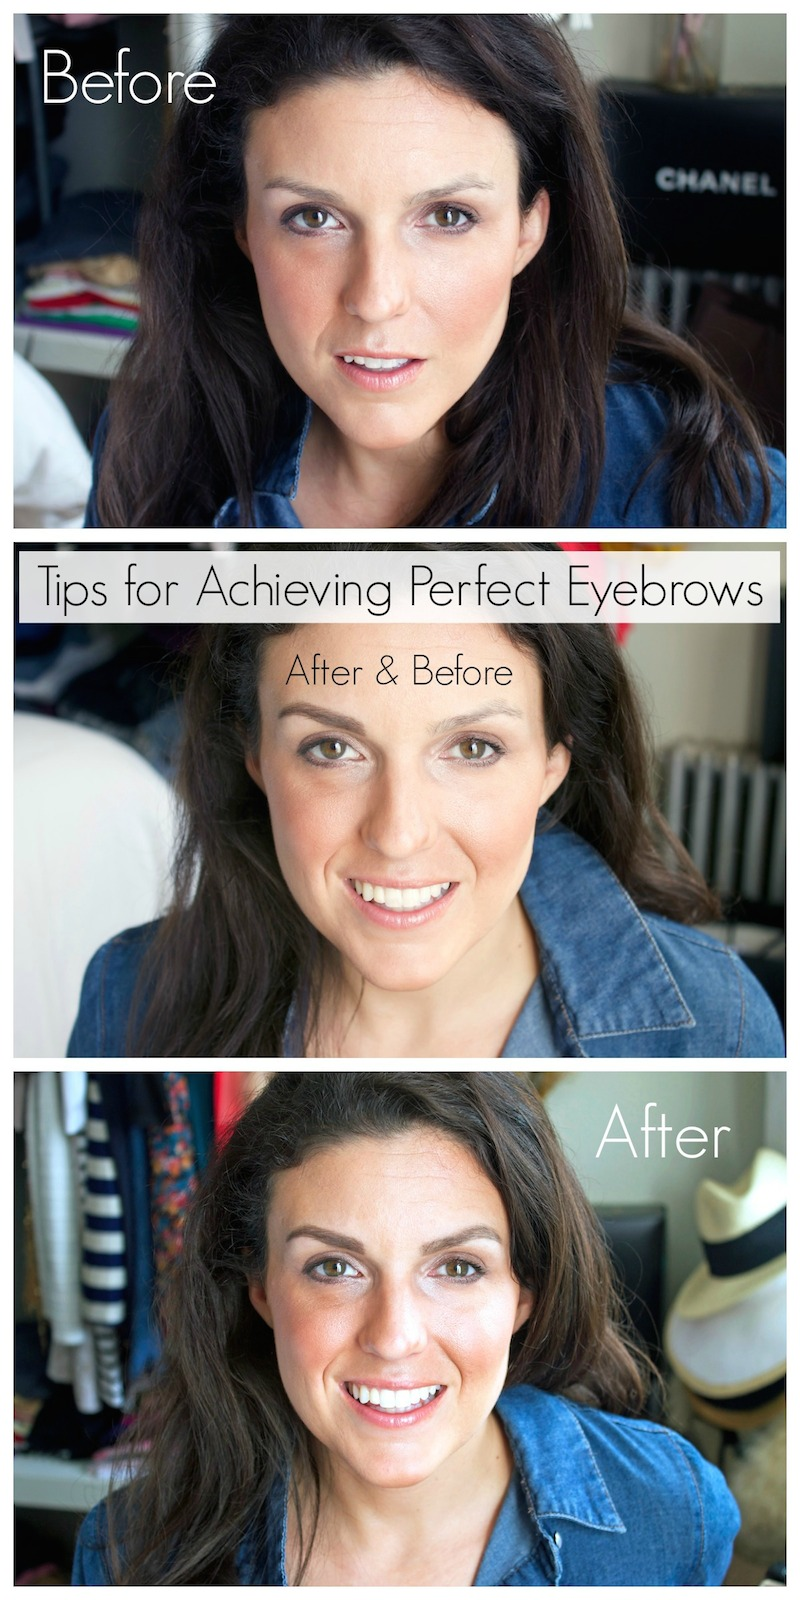 Perfect-Eyebrows-before-after-finished.jpg